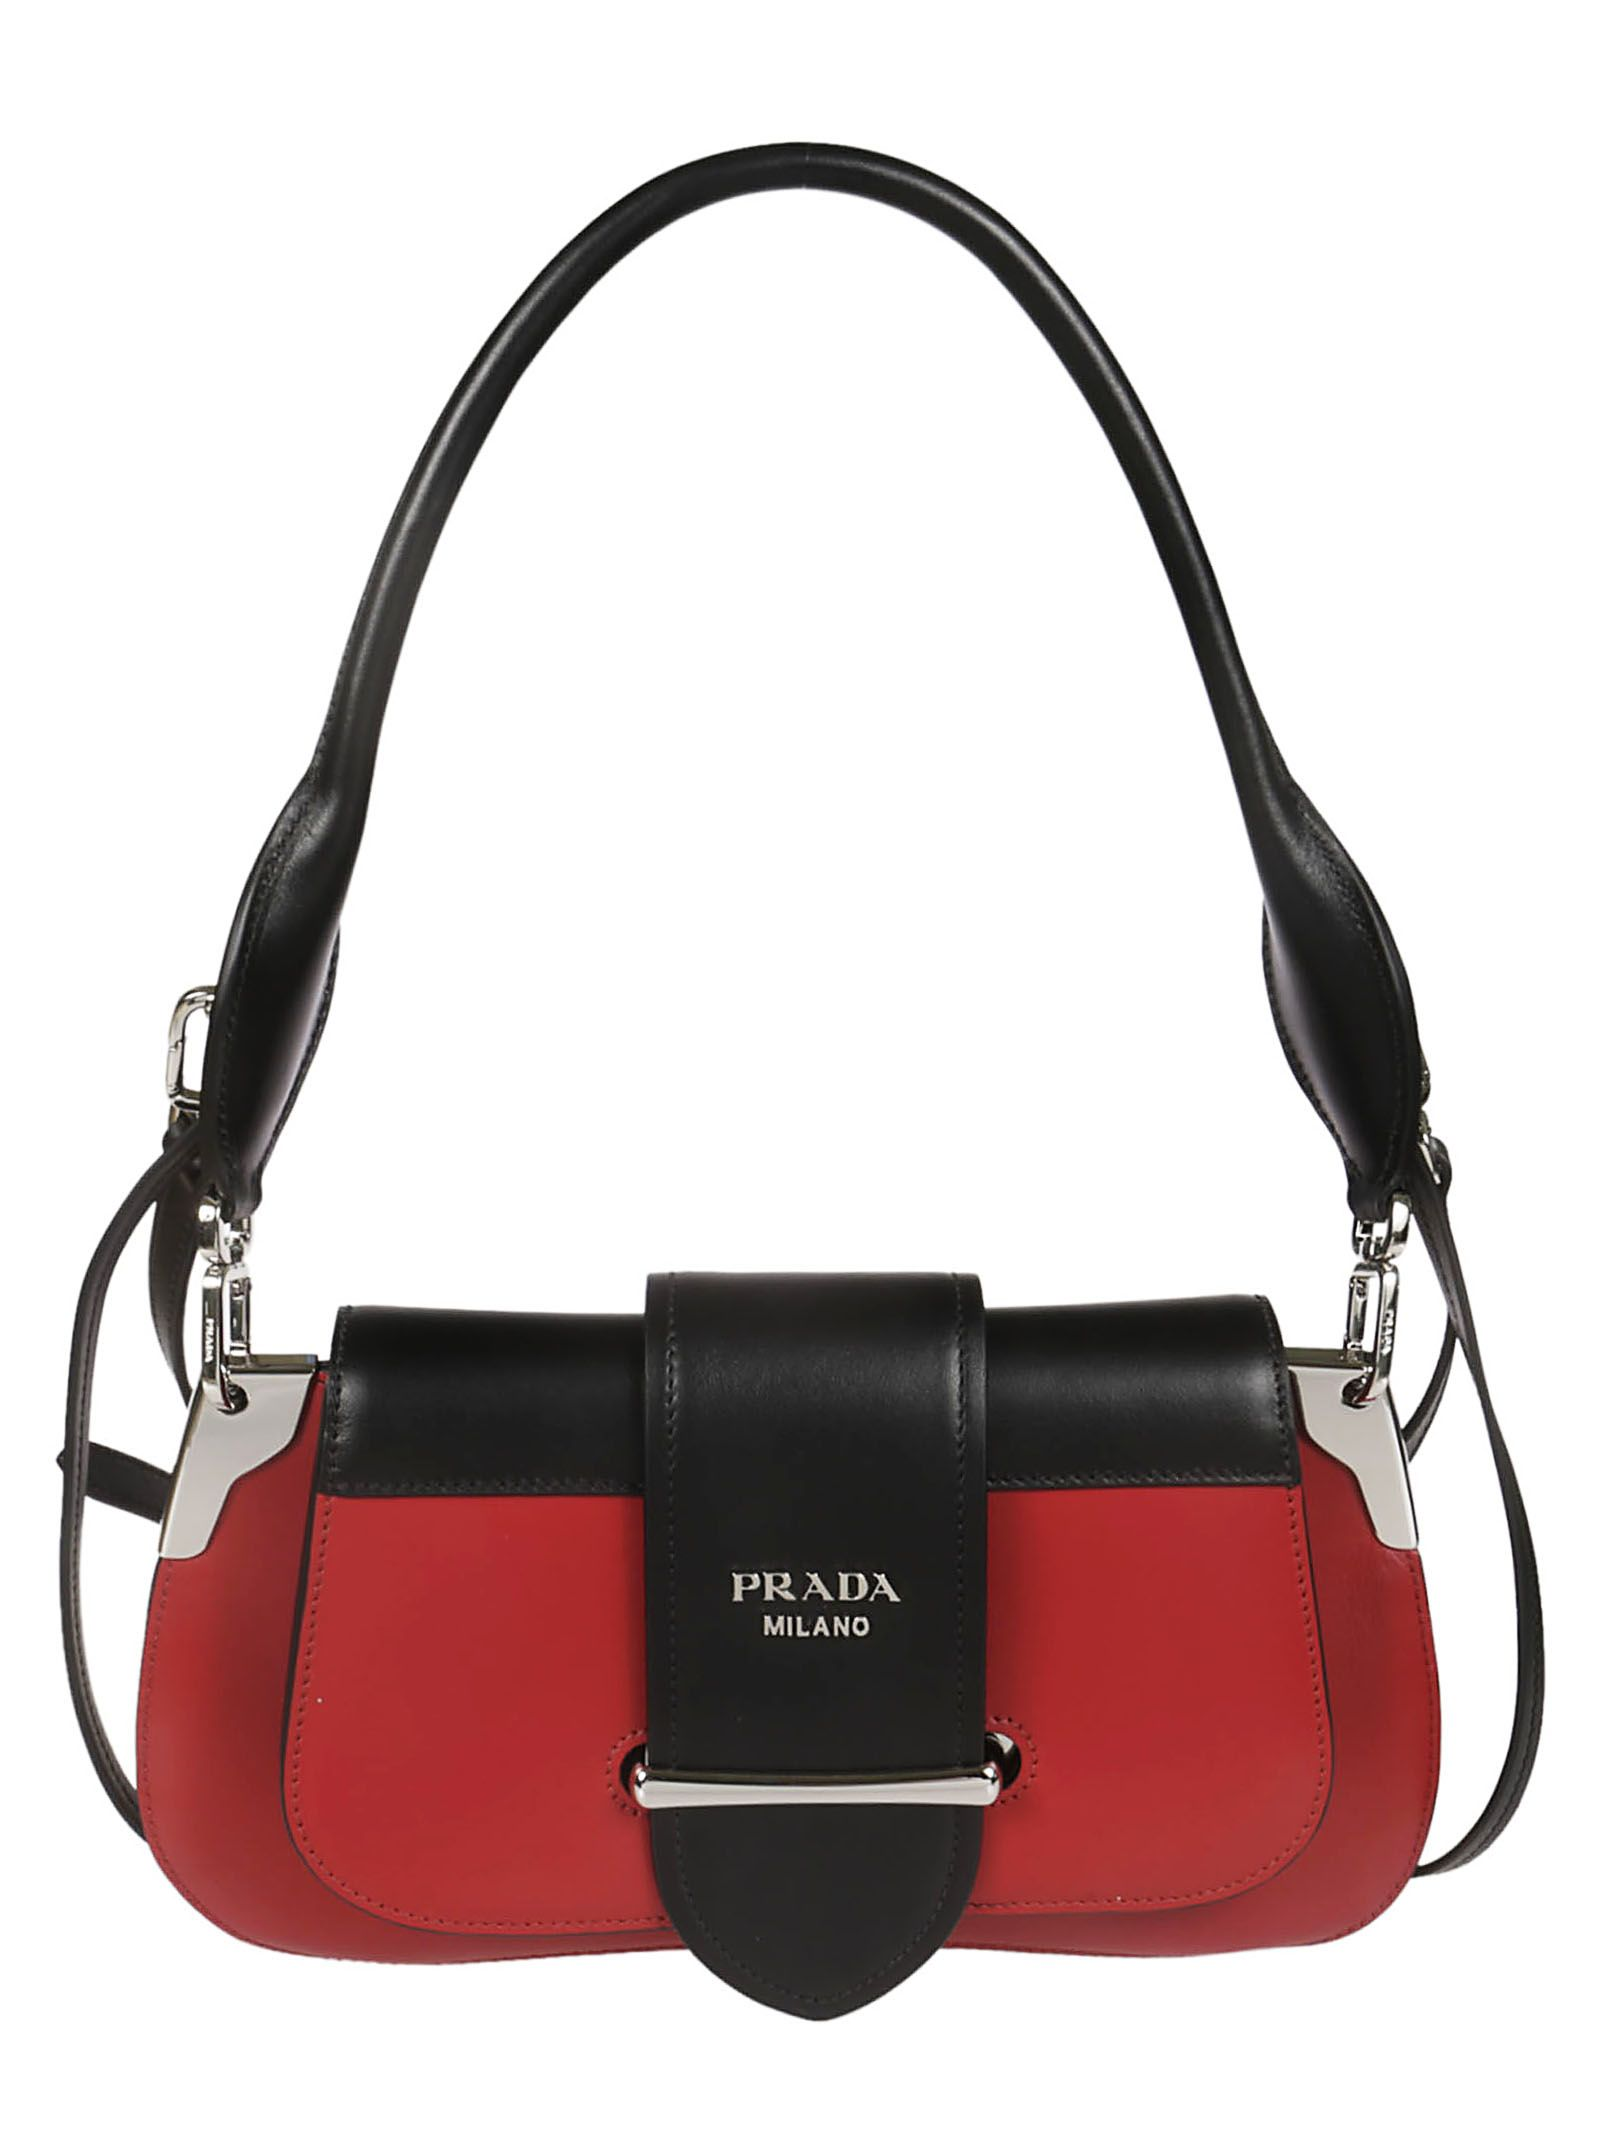 c11fd7bda3ab Prada Prada Sidonie Shoulder Bag - Red - 10831047 | italist